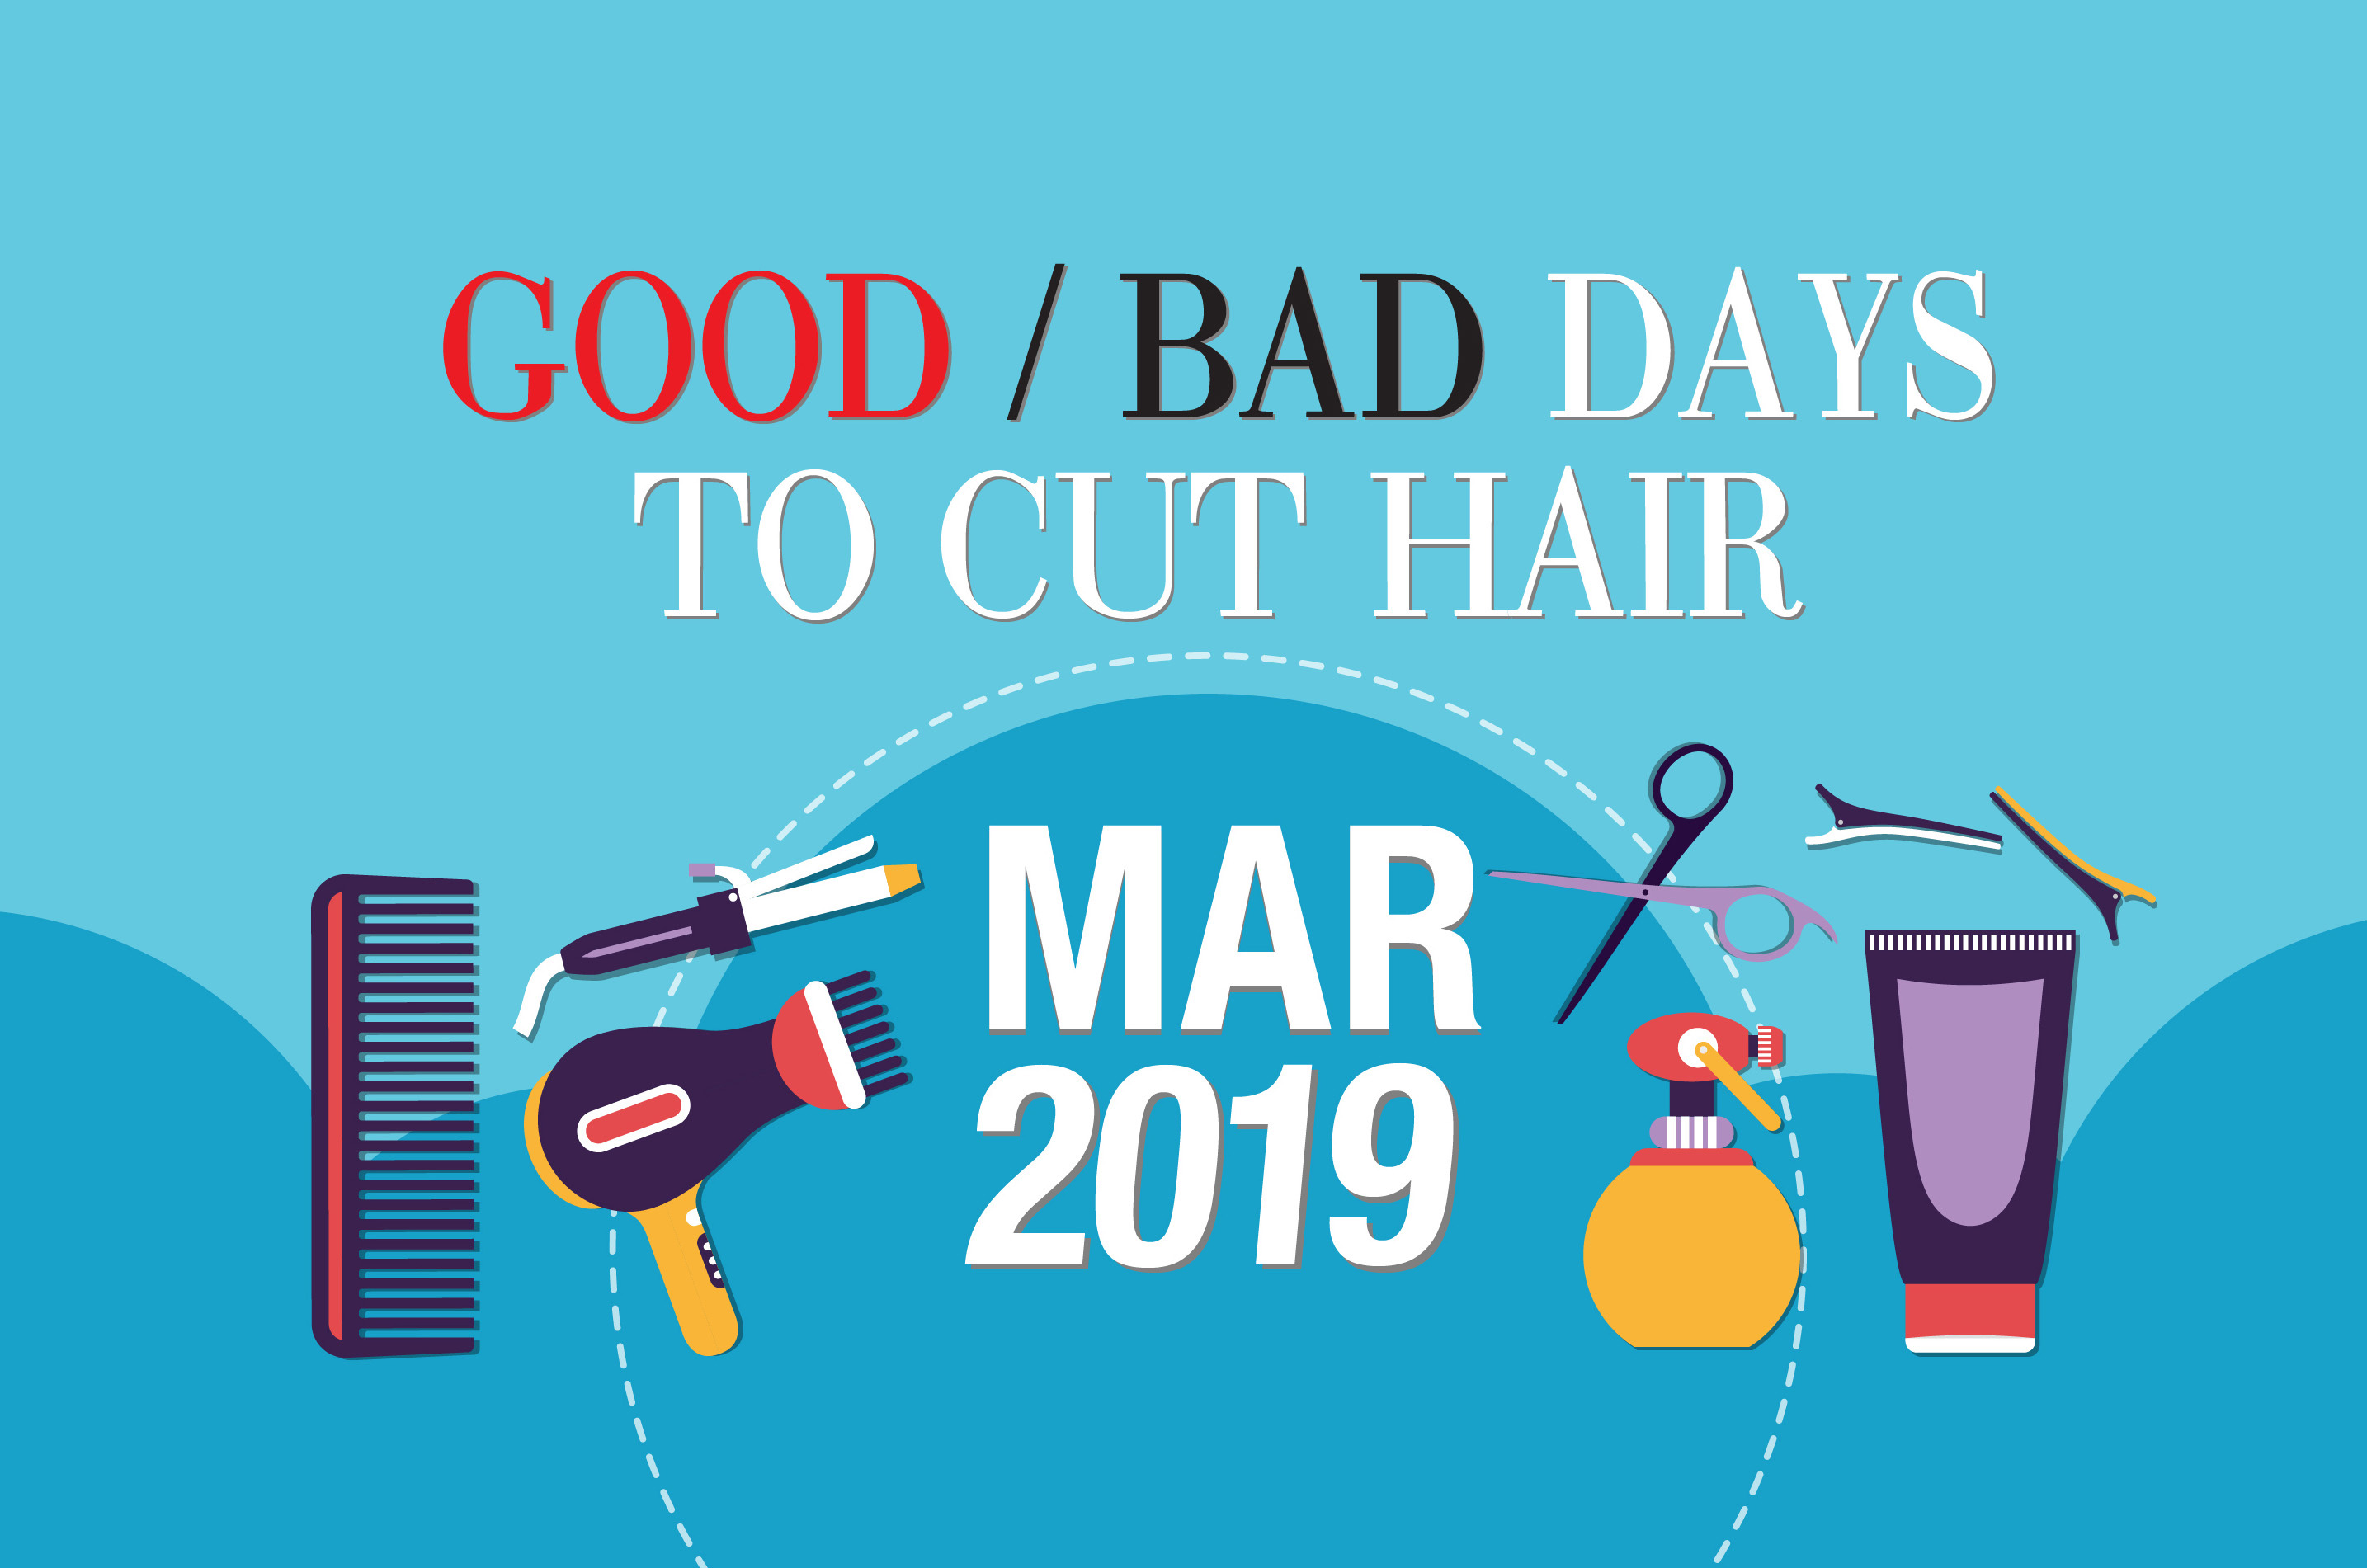 Best Days To Cut Hair For Growth 2020 Good & Bad Days to Cut Hair for March 2019   WOFS.com